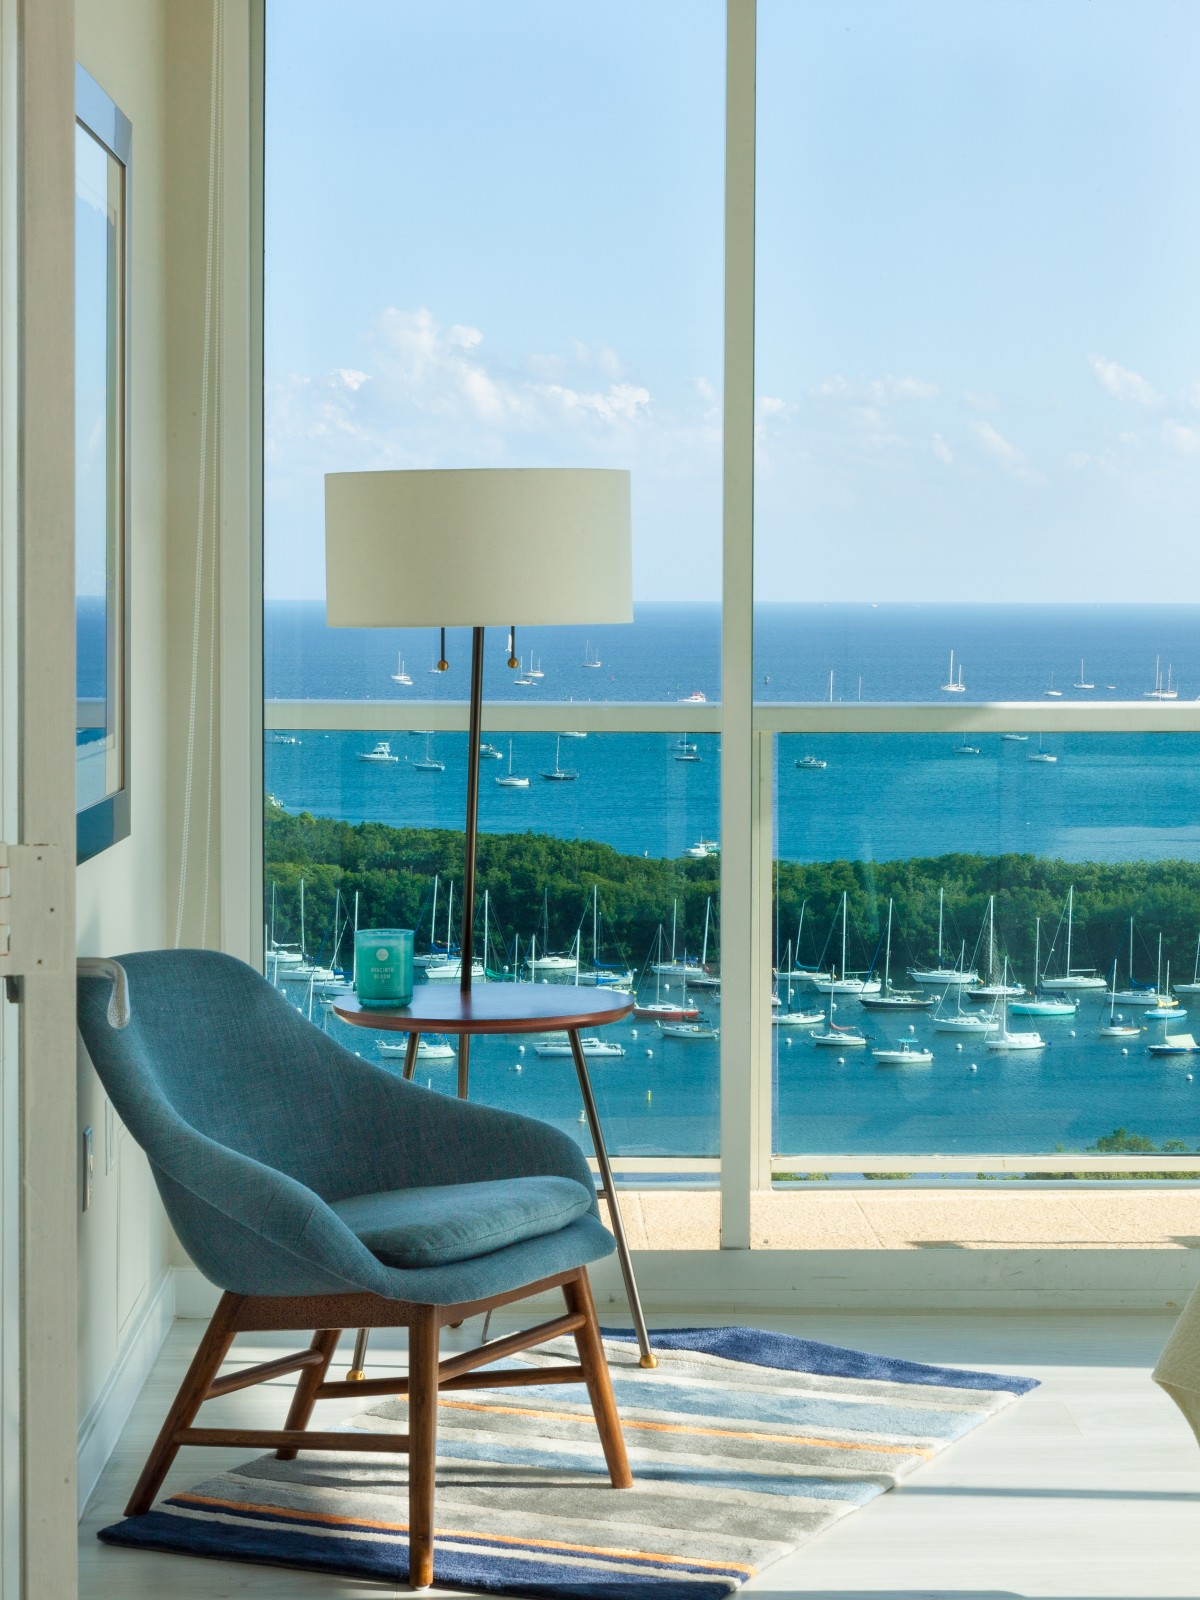 Ocean View from both sides, Pool, Hot Tub. Free Parking. Sonesta, Miami